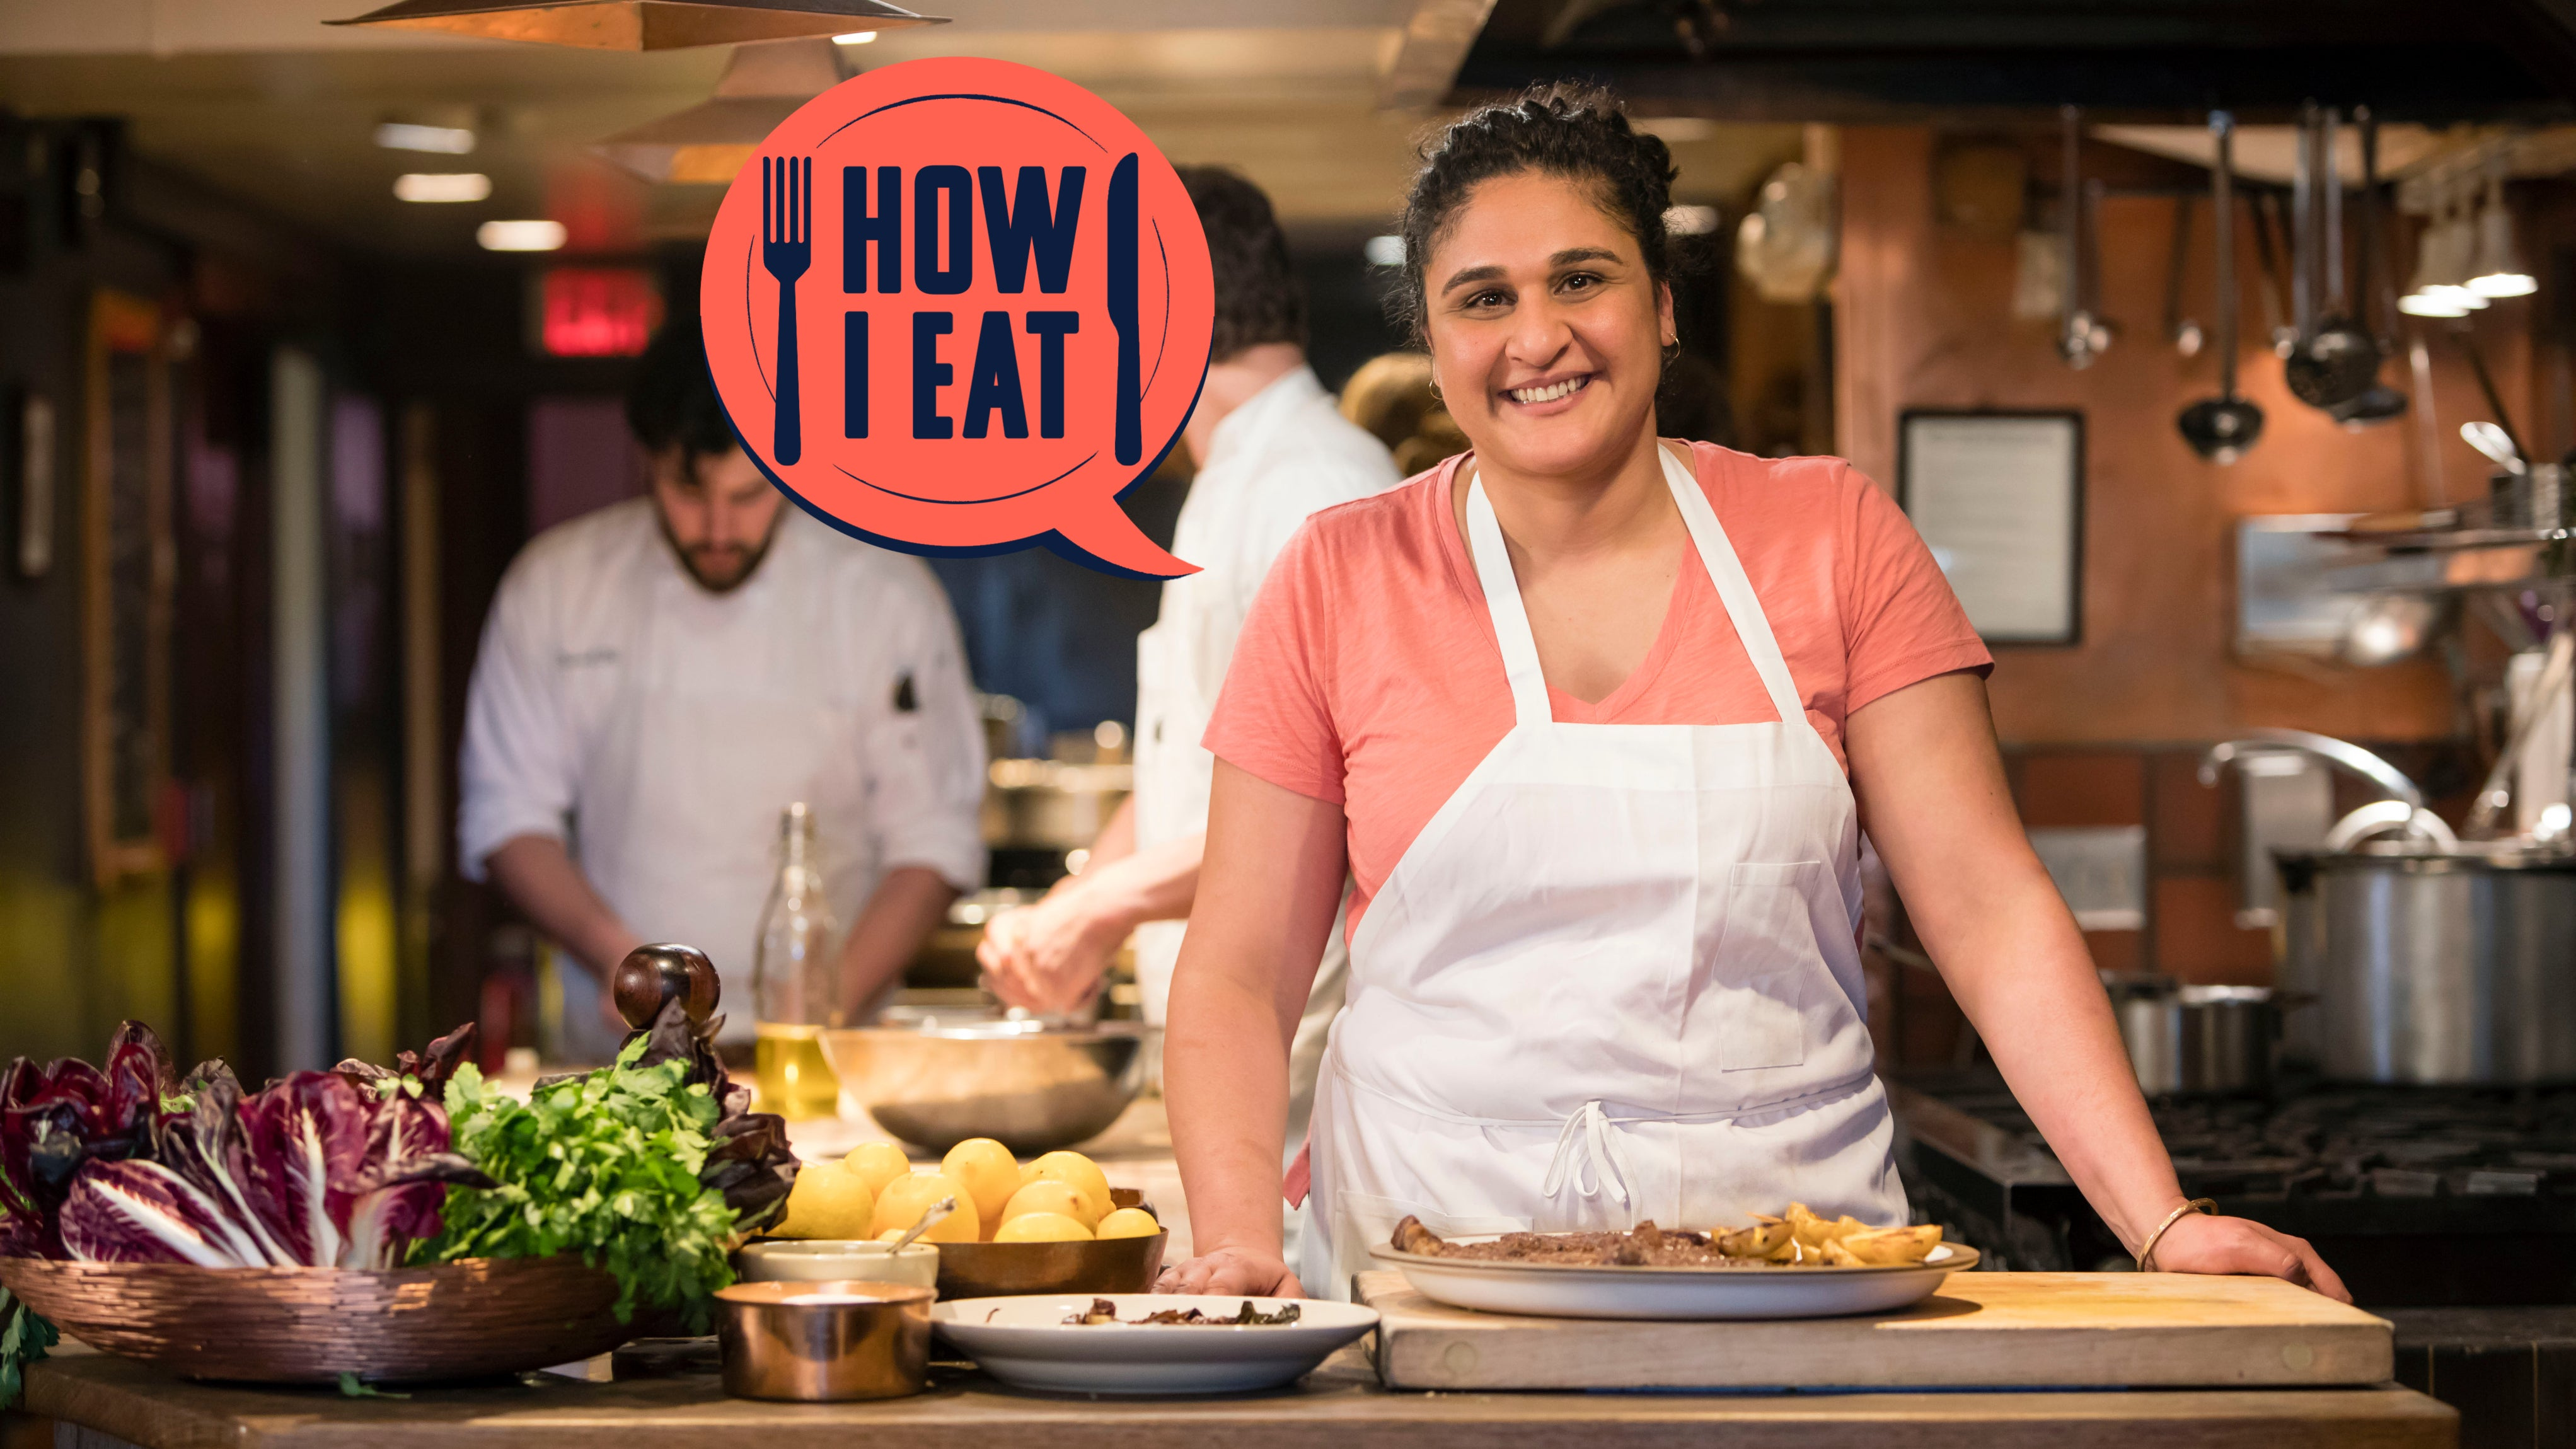 I'm Samin Nosrat, Host And Executive Producer Of Salt, Fat, Acid, Heat, And This Is How I Eat